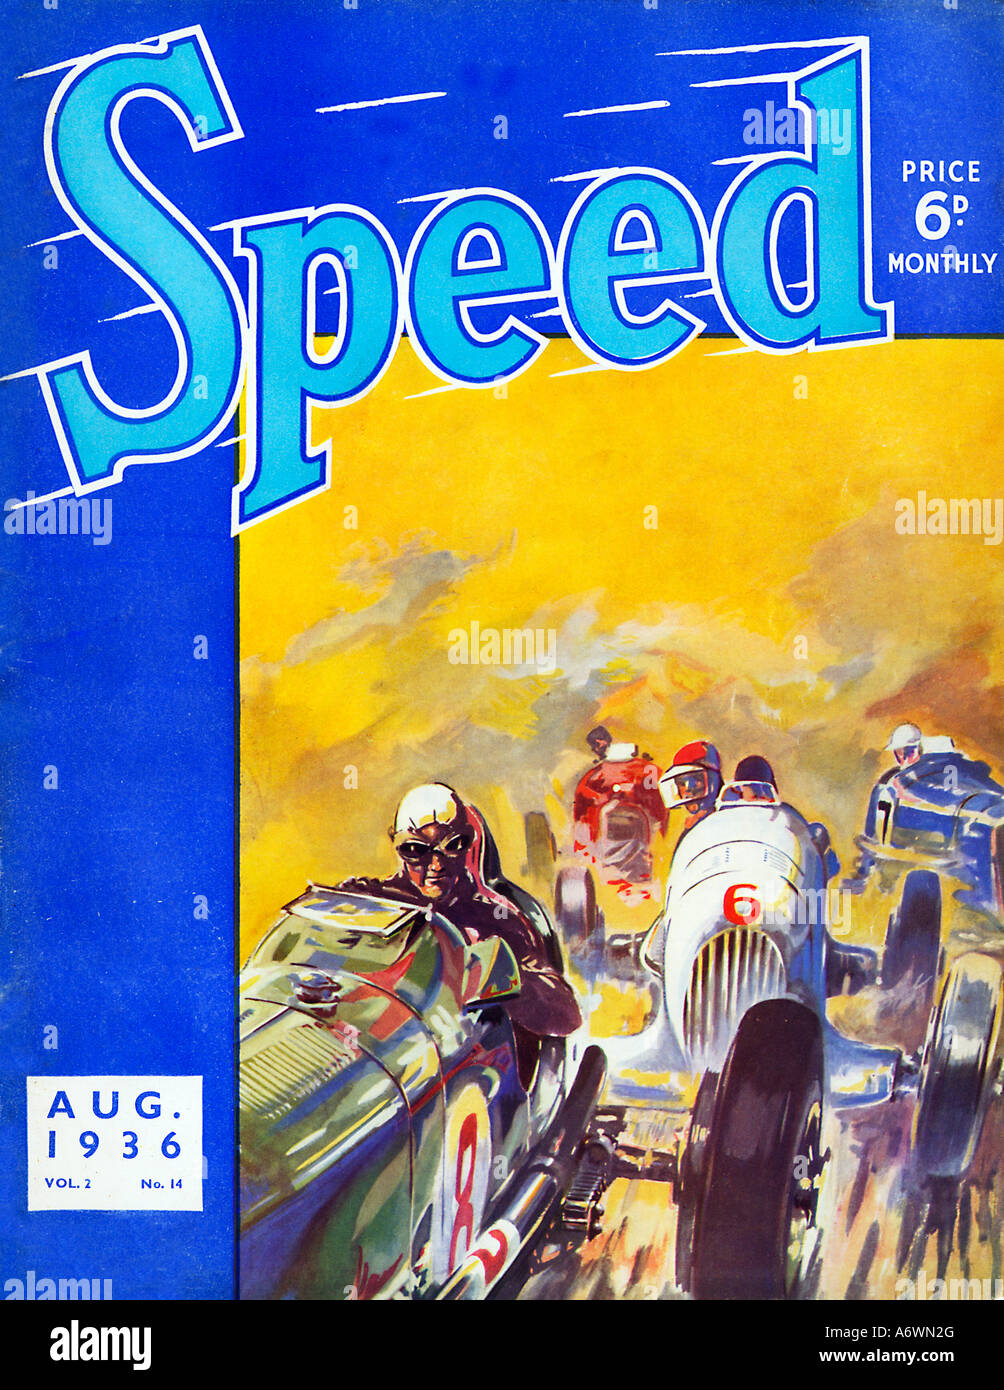 Speed August 1936 cover of the magazine for motor sport enthusiasts shows racing cars jostling for position - Stock Image